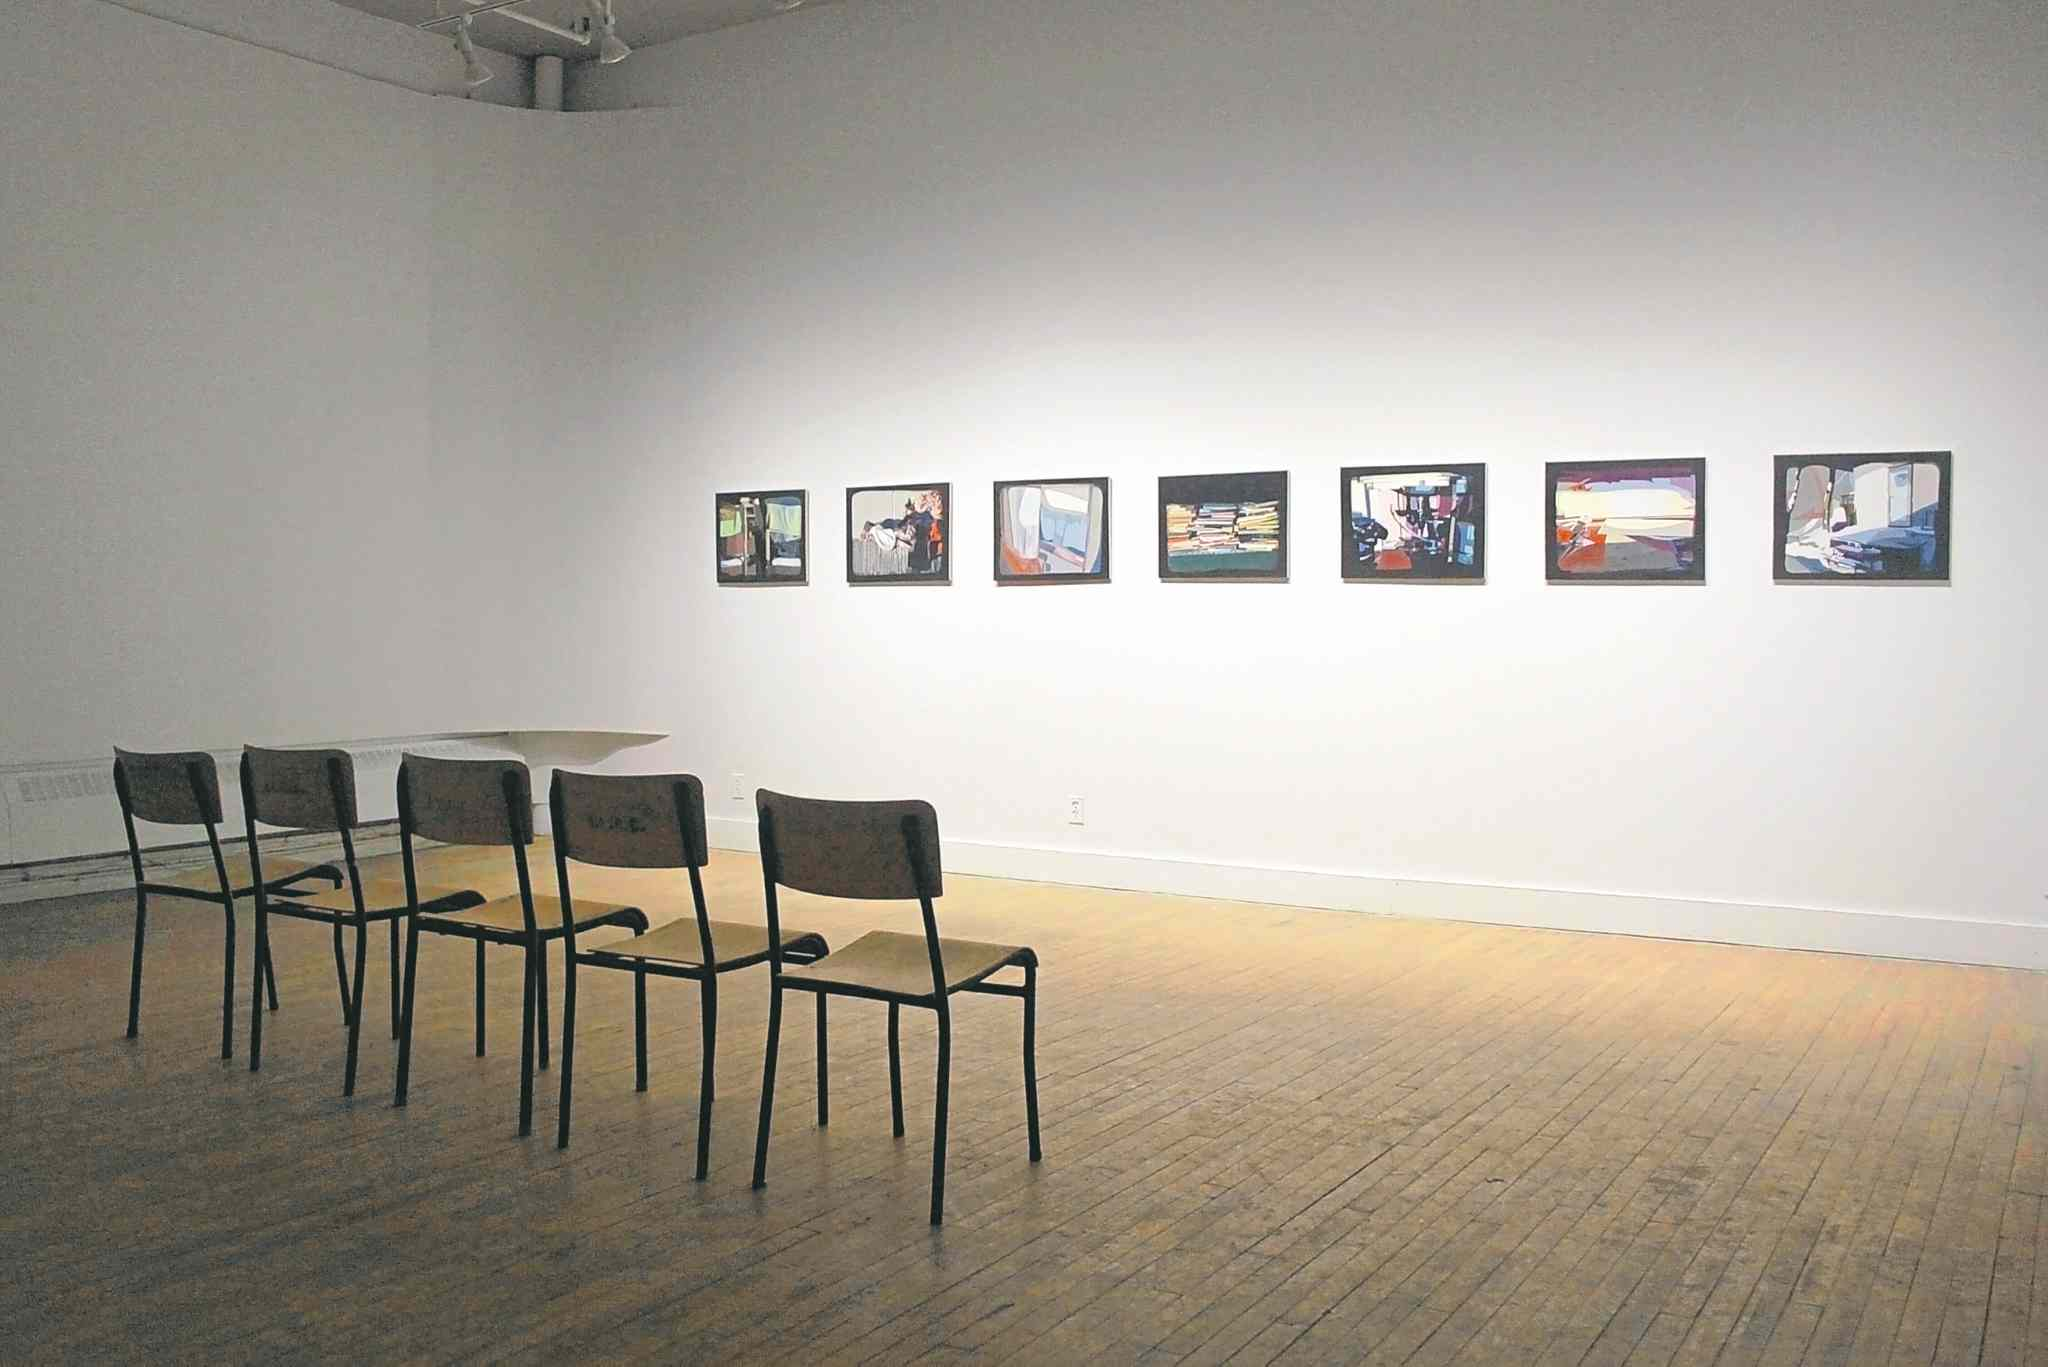 Viewing area in front of collages by Irene Bindi